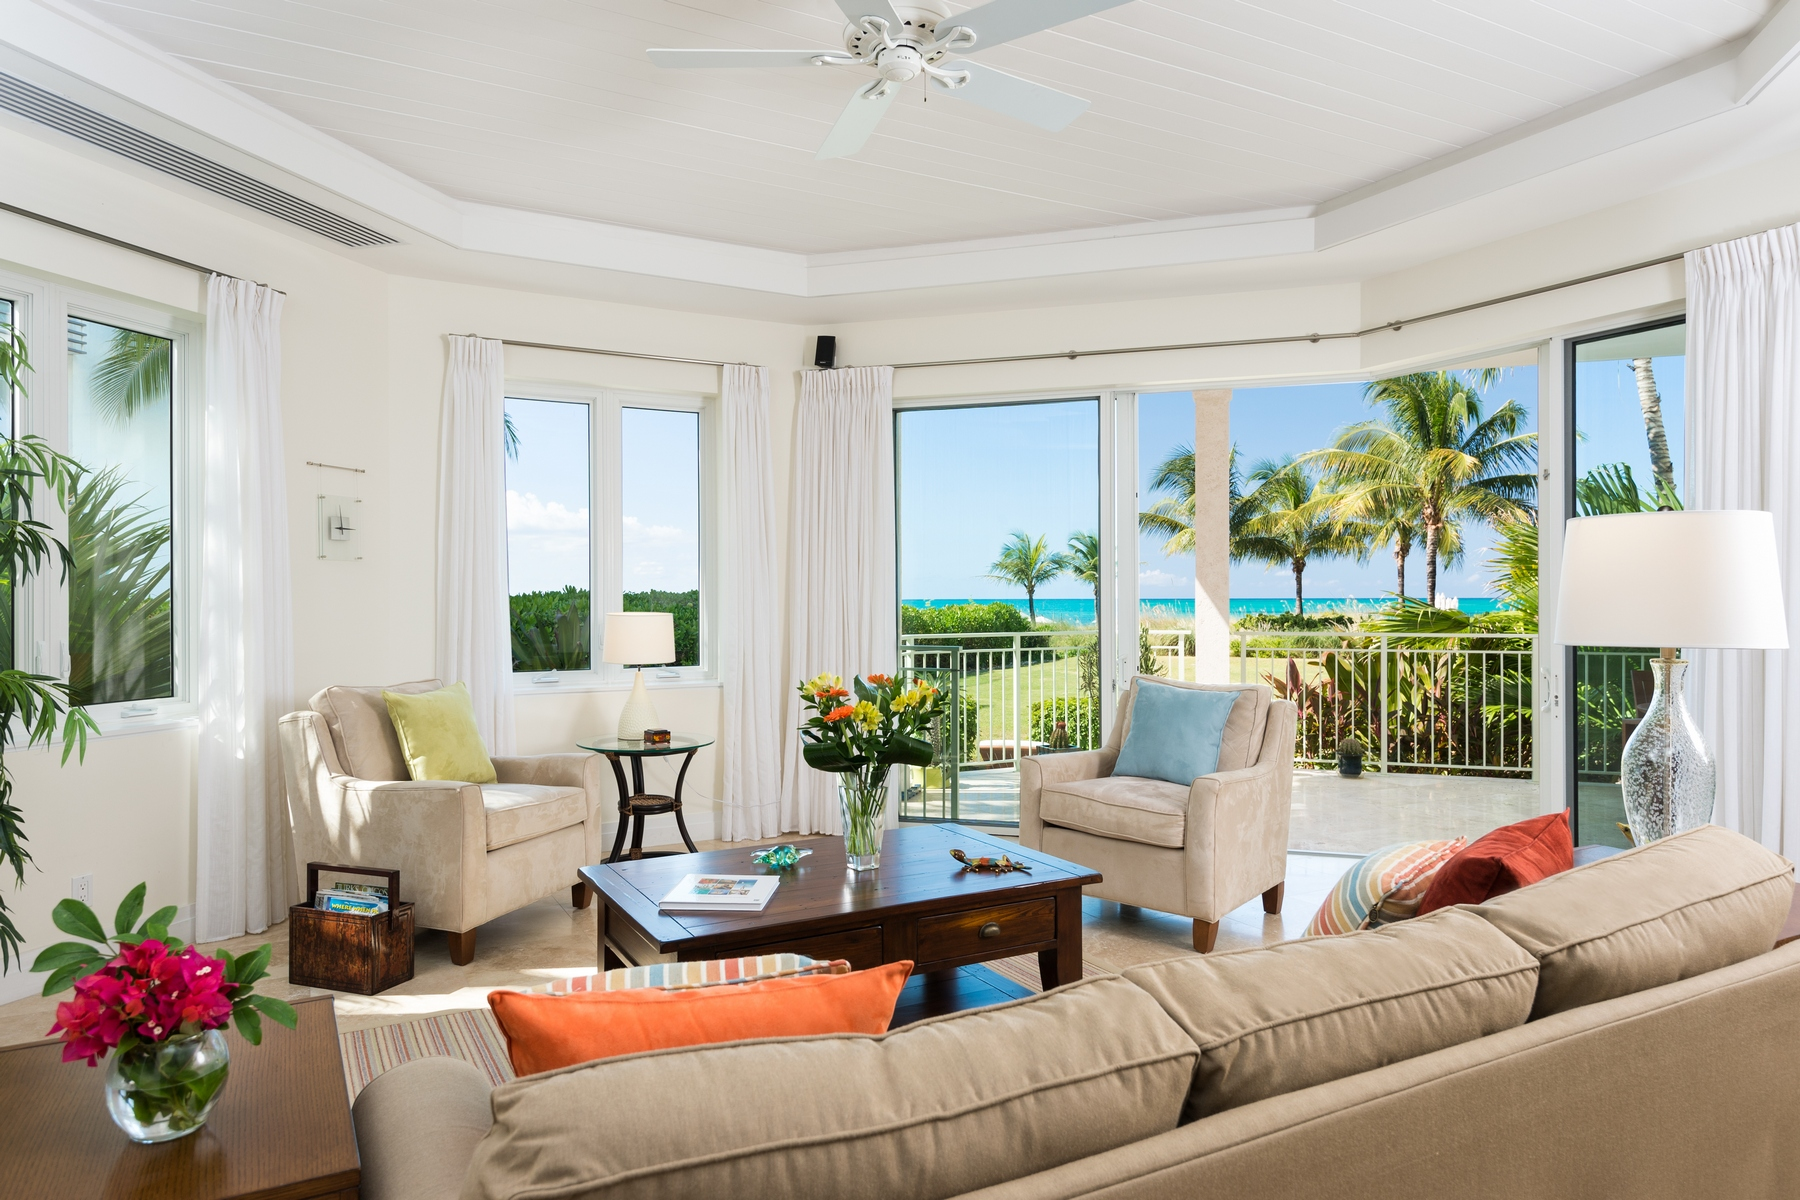 Condominium for Sale at West Bay Club - Suite 102 Beachfront Grace Bay, Providenciales, TC Turks And Caicos Islands